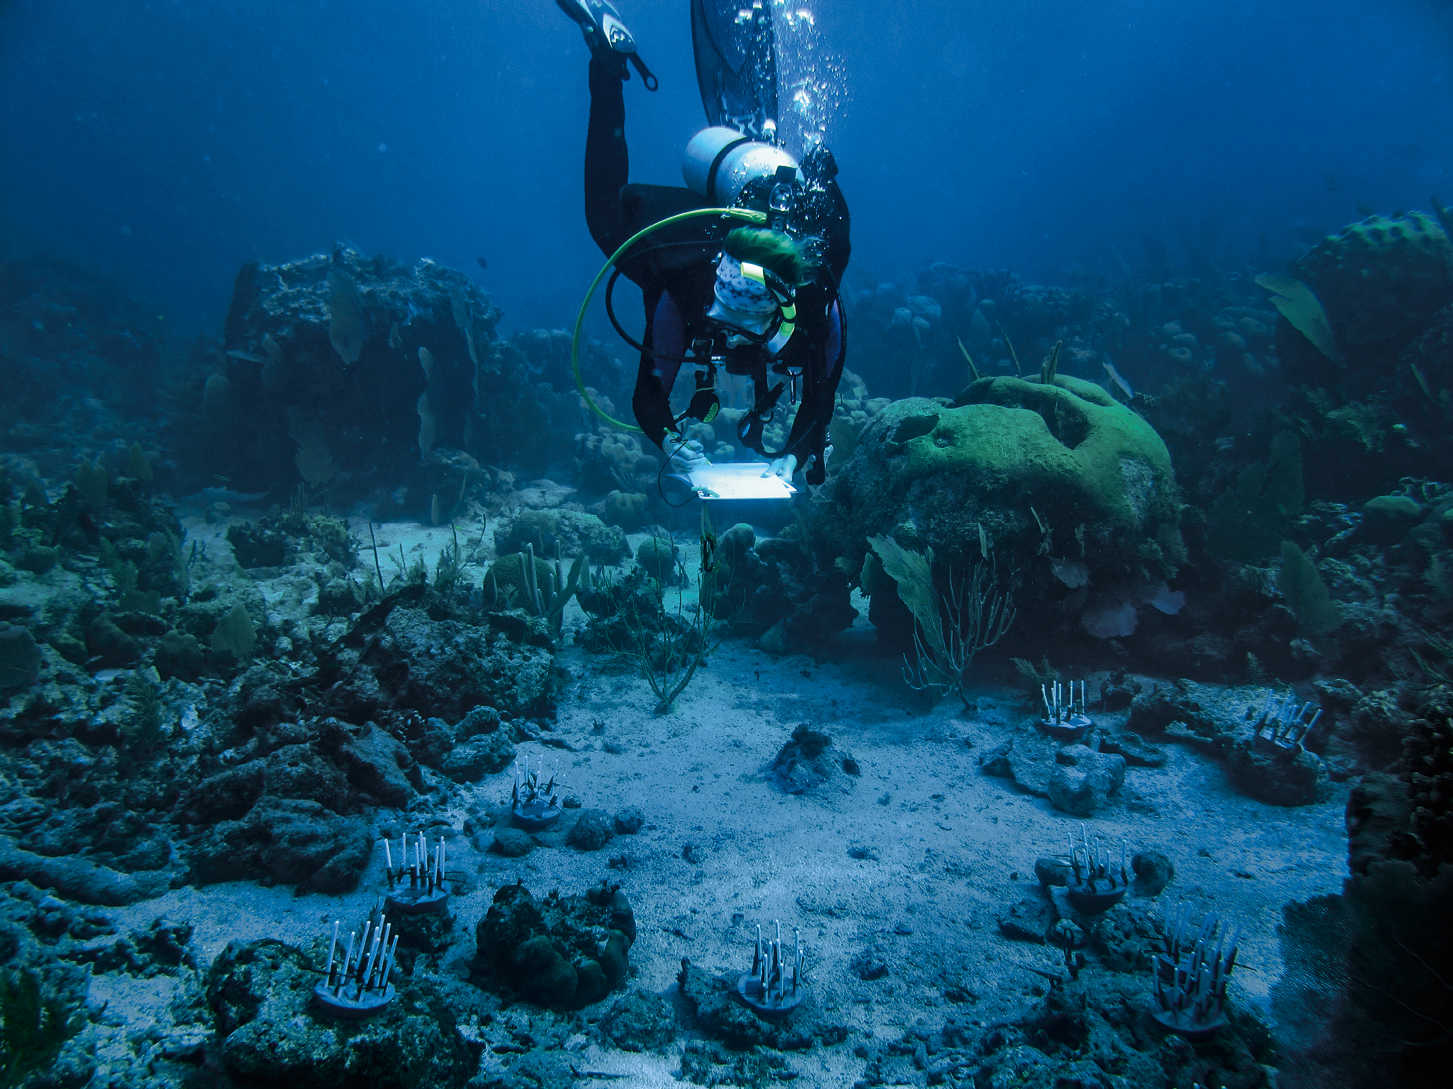 Scuba diver studying a reef